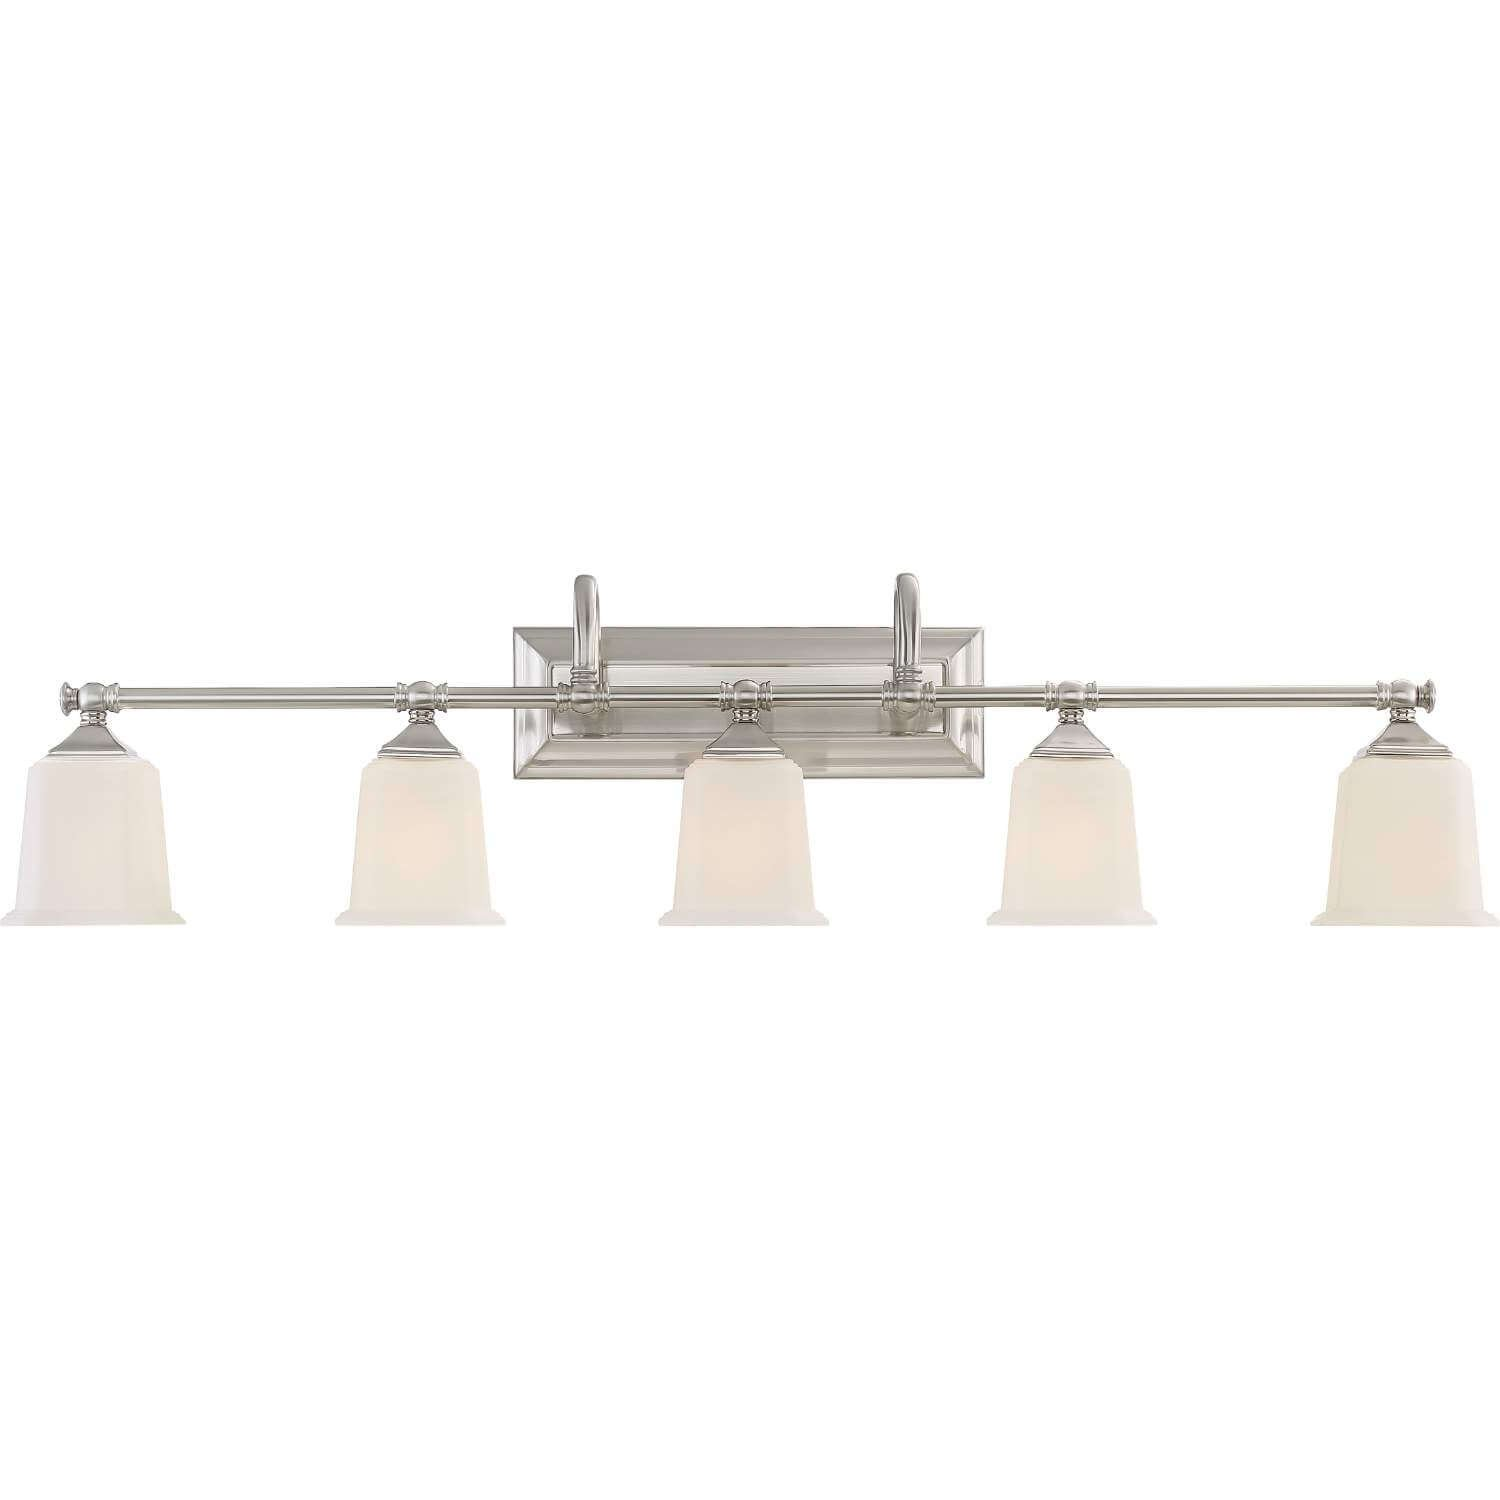 Bidwell Lighting Holt 42 Wide Vanity Light – Brushed Nickel